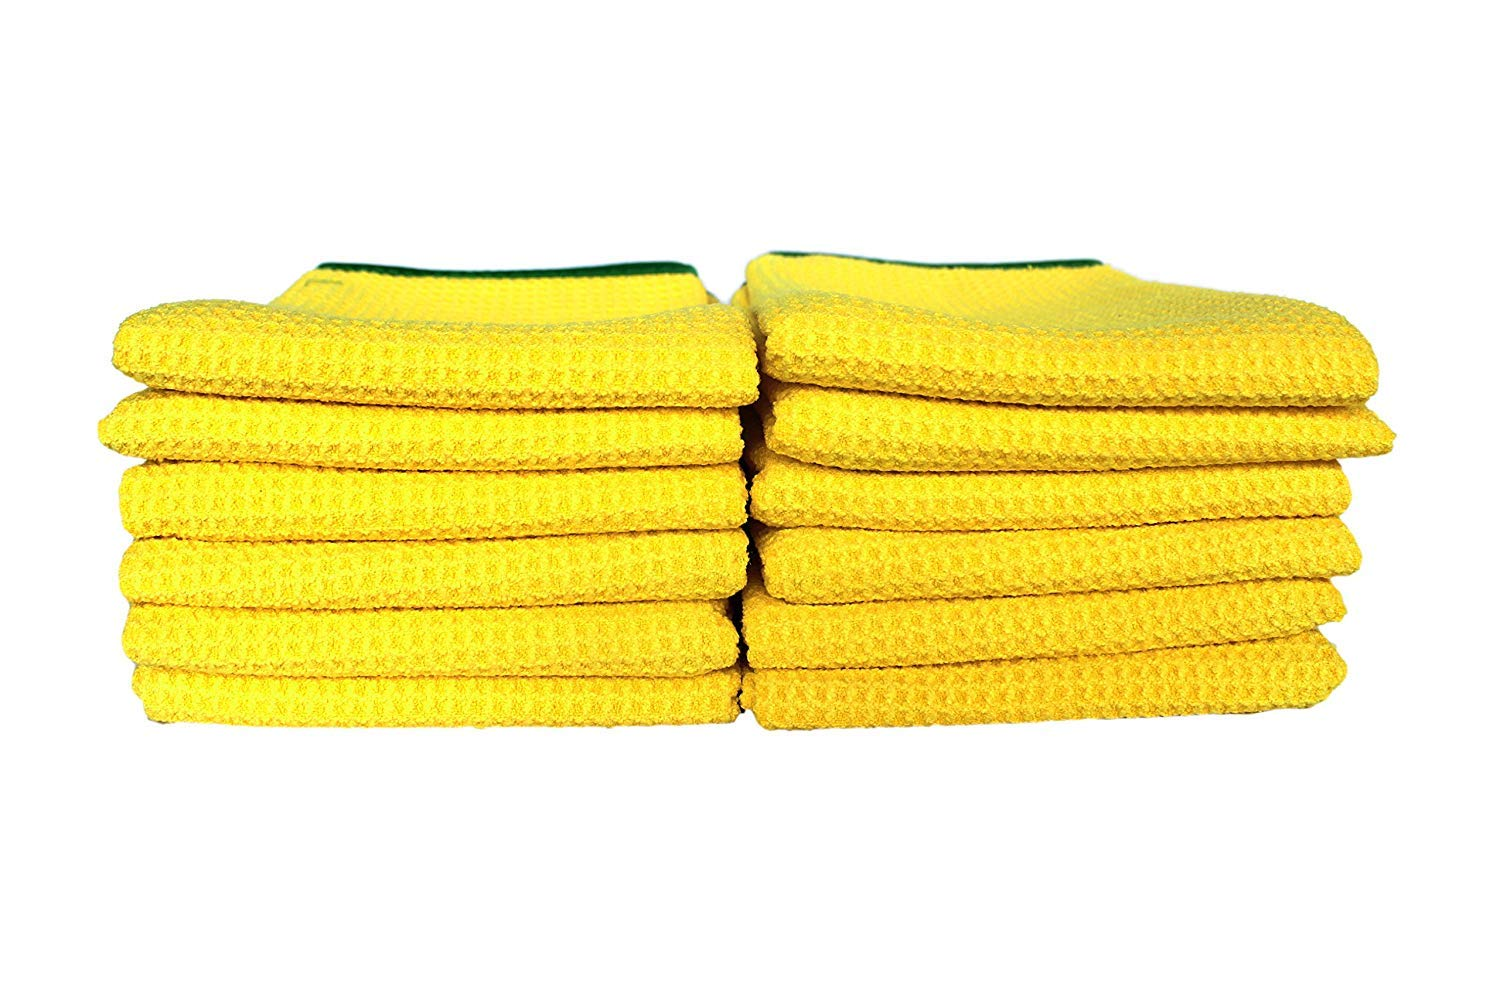 Maxshine 400GSM Crazy Microfiber Waffle Weave Drying Towel with Green Silk Border for Car Detailing, Yellow (60X90cm, Pack of 12)